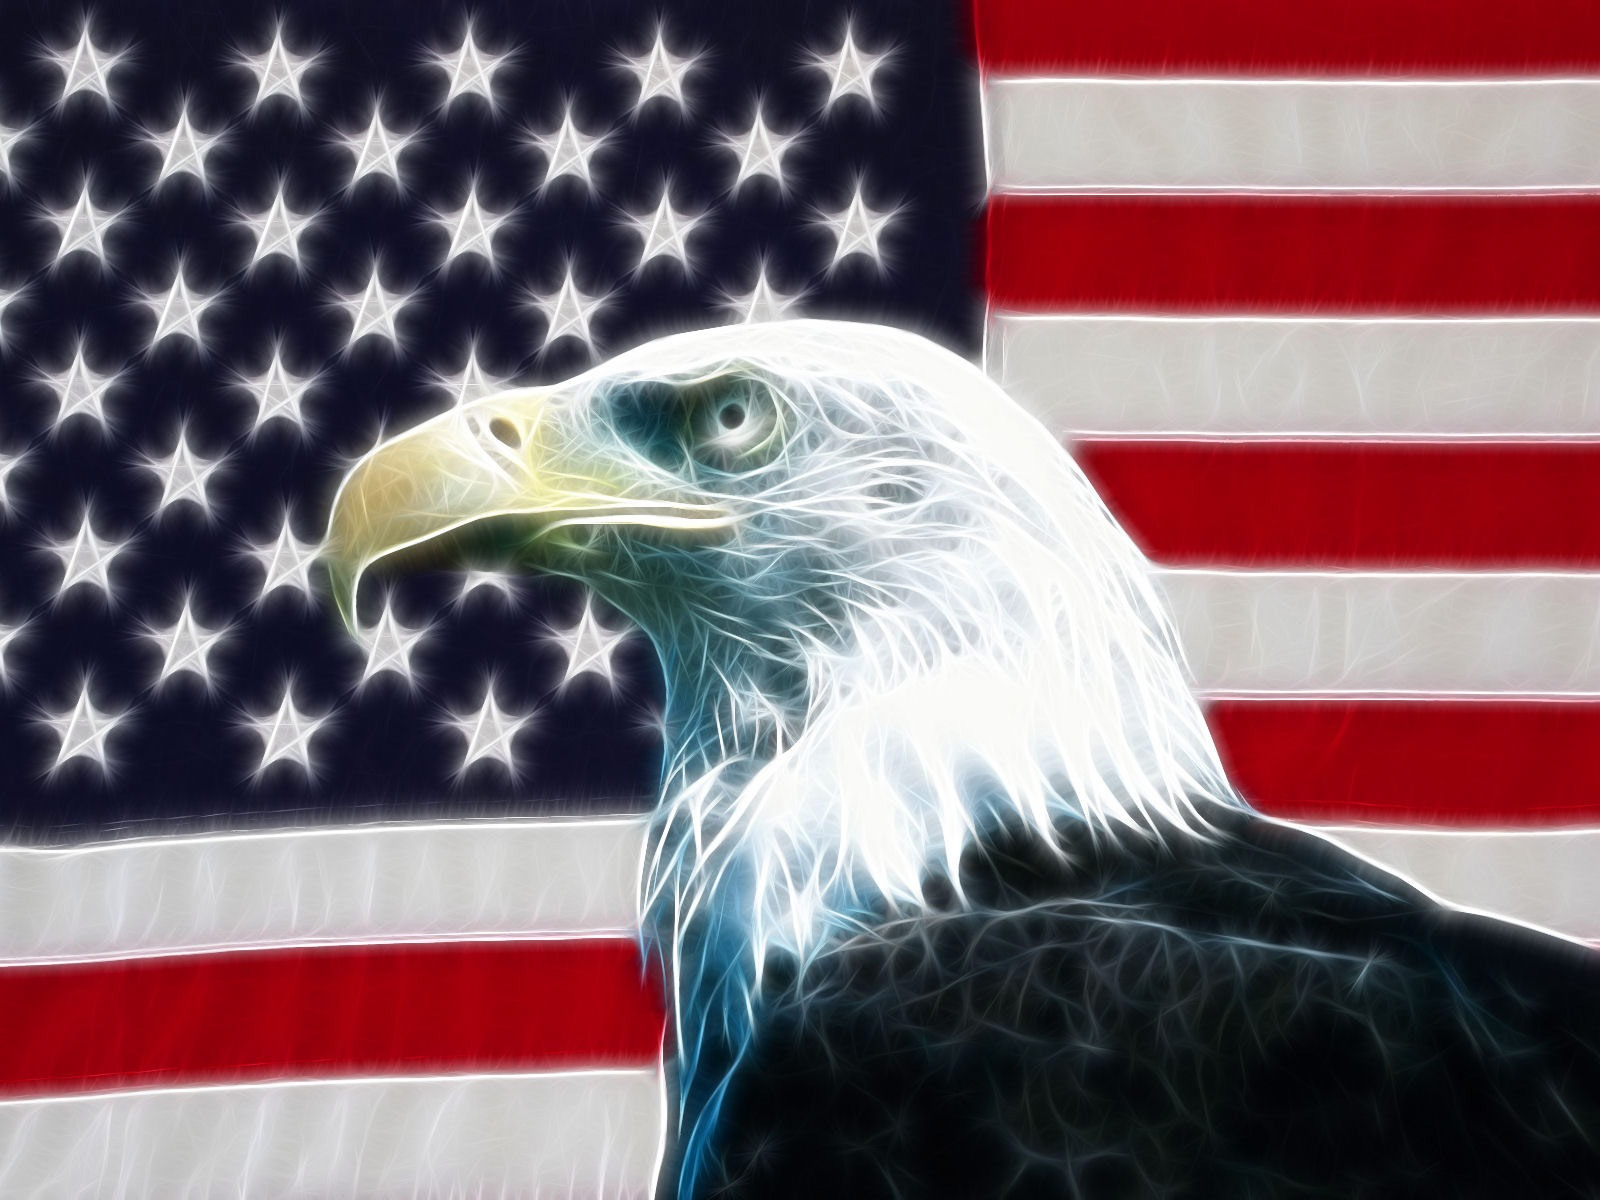 1600x1200 American eagle desktop wallpapers and stock photos